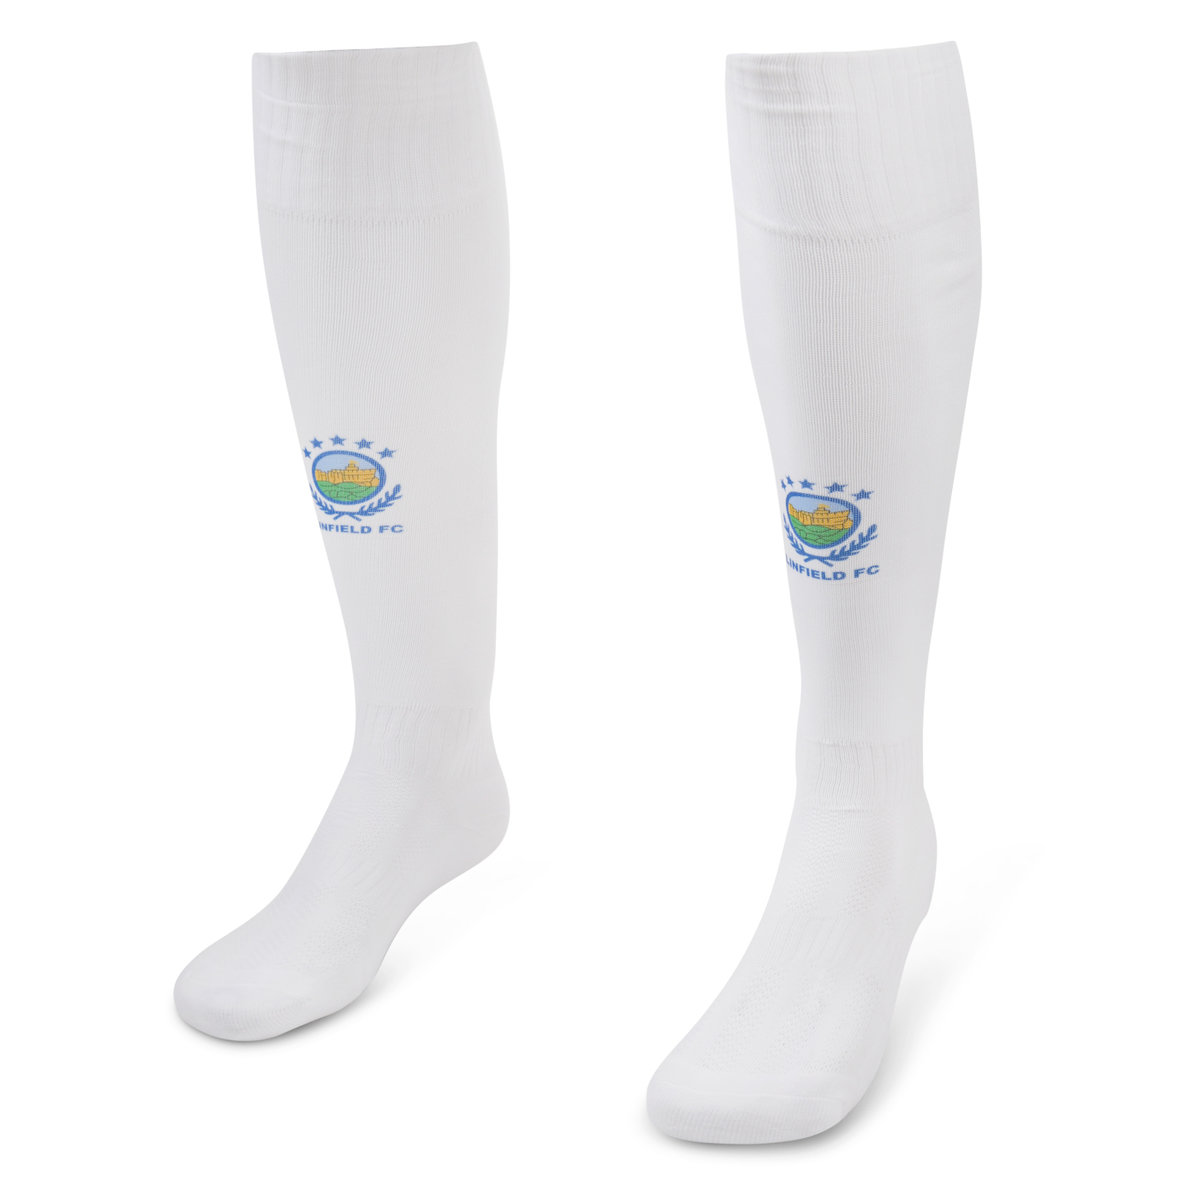 LINFIELD FC 19/20 JUNIOR AWAY SOCKS